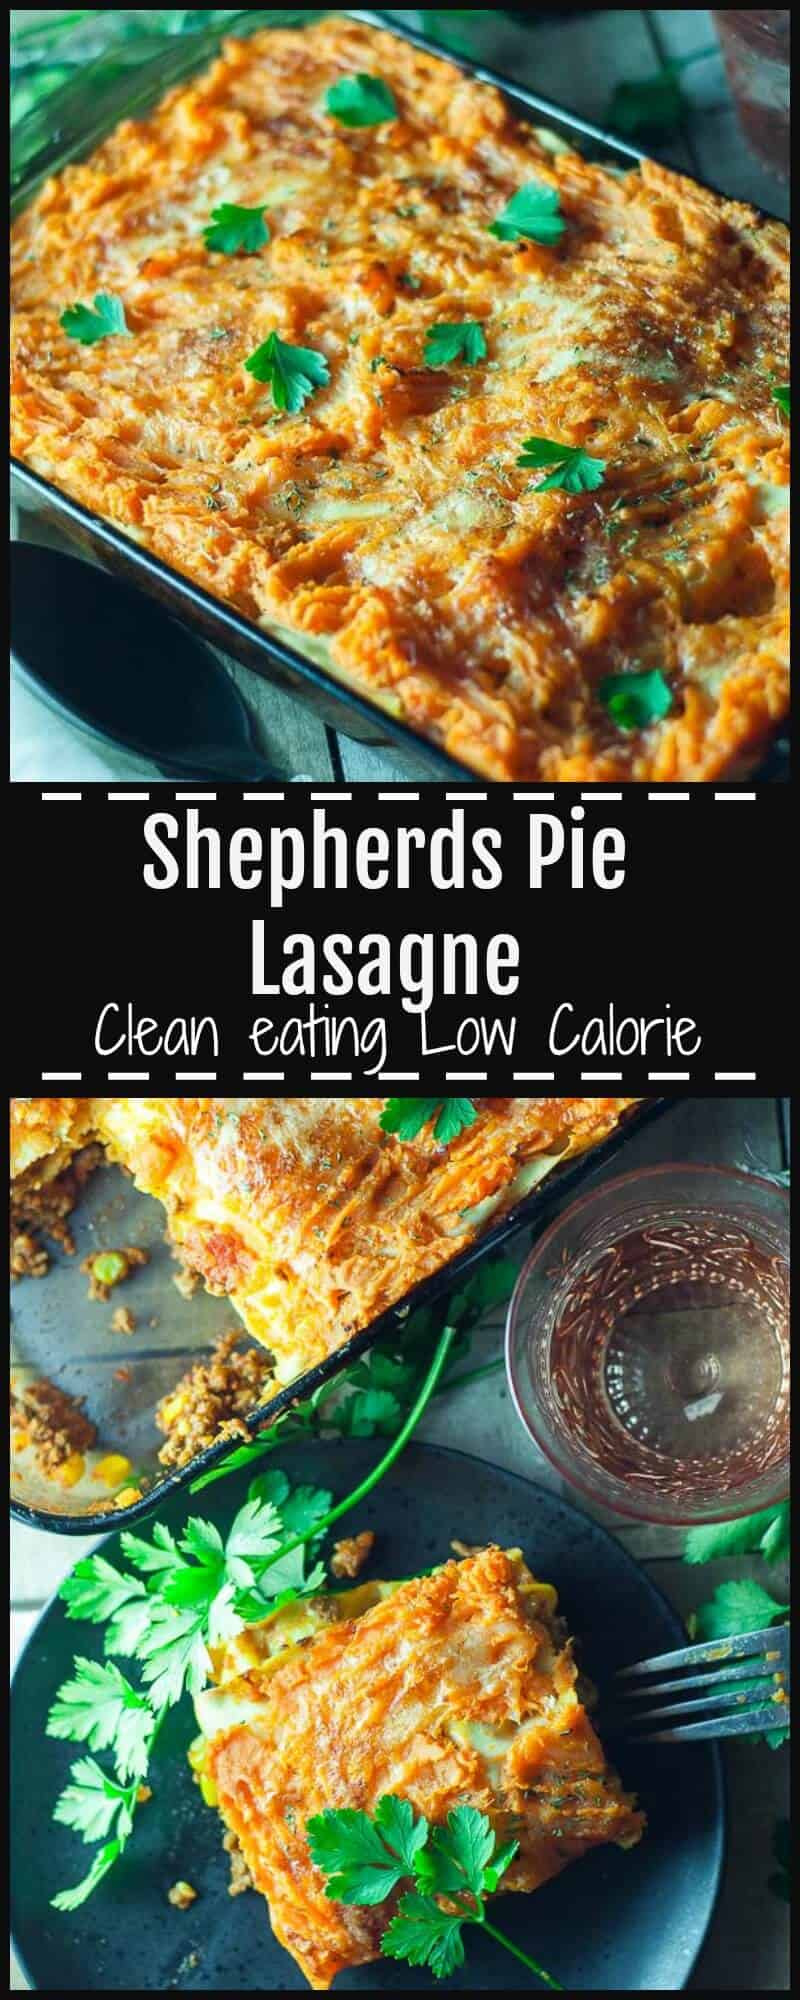 This Shepherds Pie Lasagne is a warm, hearty make ahead comfort food, with layers of savoury beef mince with a hint of curry, sheets of soft lasagne noodles and sweet potato, cheese and crumb combination on top.